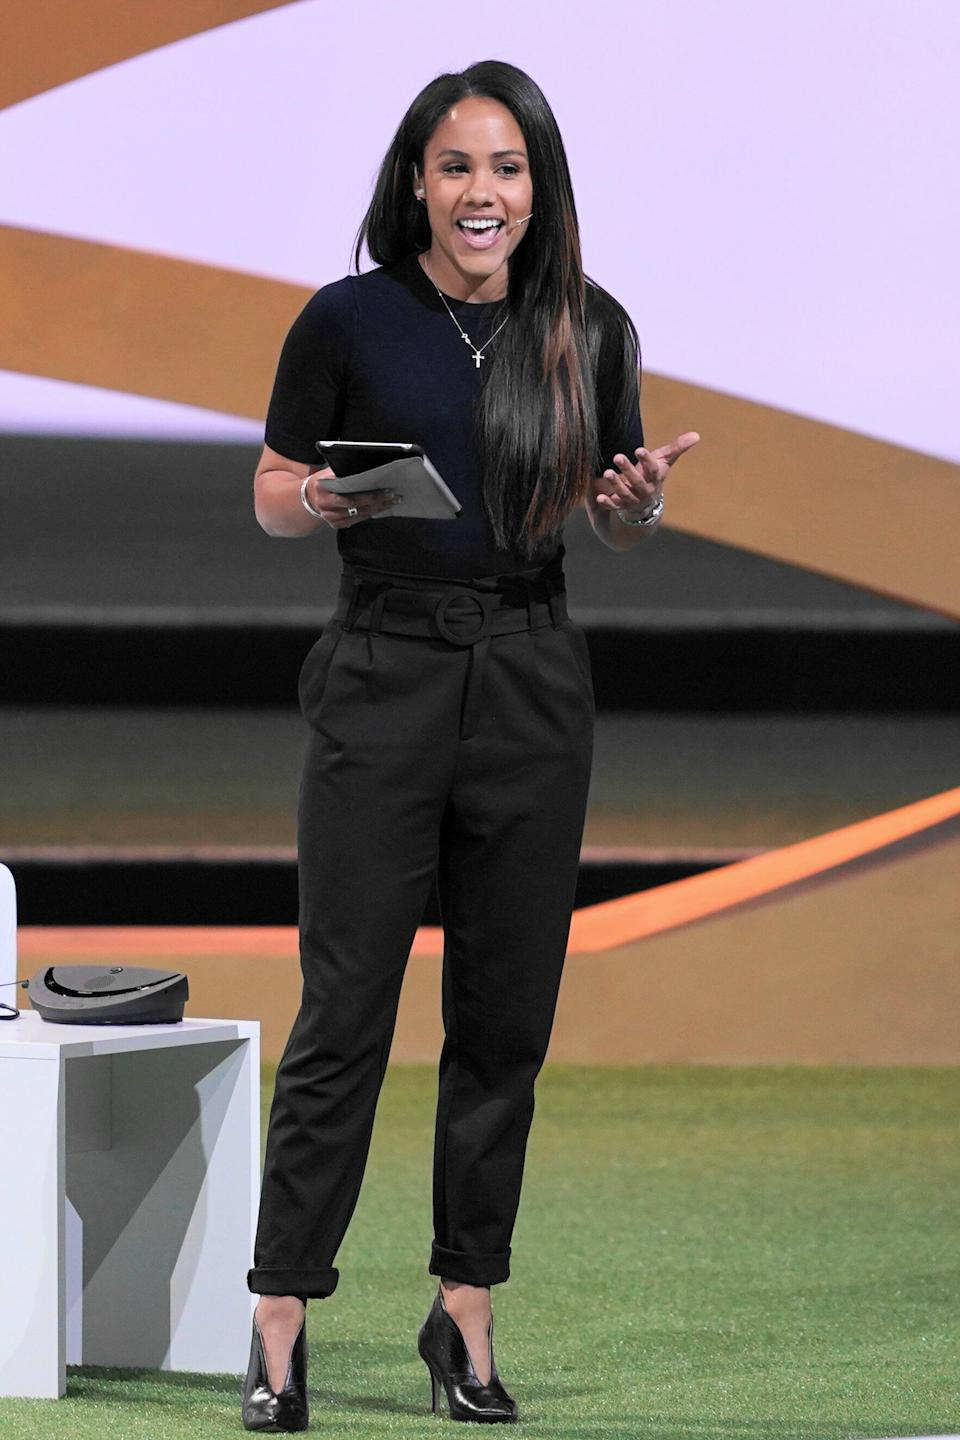 """The 12th star confirmed for this year's sports-heavy line-up was Alex Scott, best known as a former England Lioness and a presenter during the World Cup coverage, most notably on Match Of The Day.<br /><br />She said Strictly is the show she's """"always wanted to do"""", adding: """"I'm super excited, but also terrified at the same time… The football pitch is a bit less glam than the ballroom, but I'm ready to try the sequins and dresses! Bring it on!"""""""